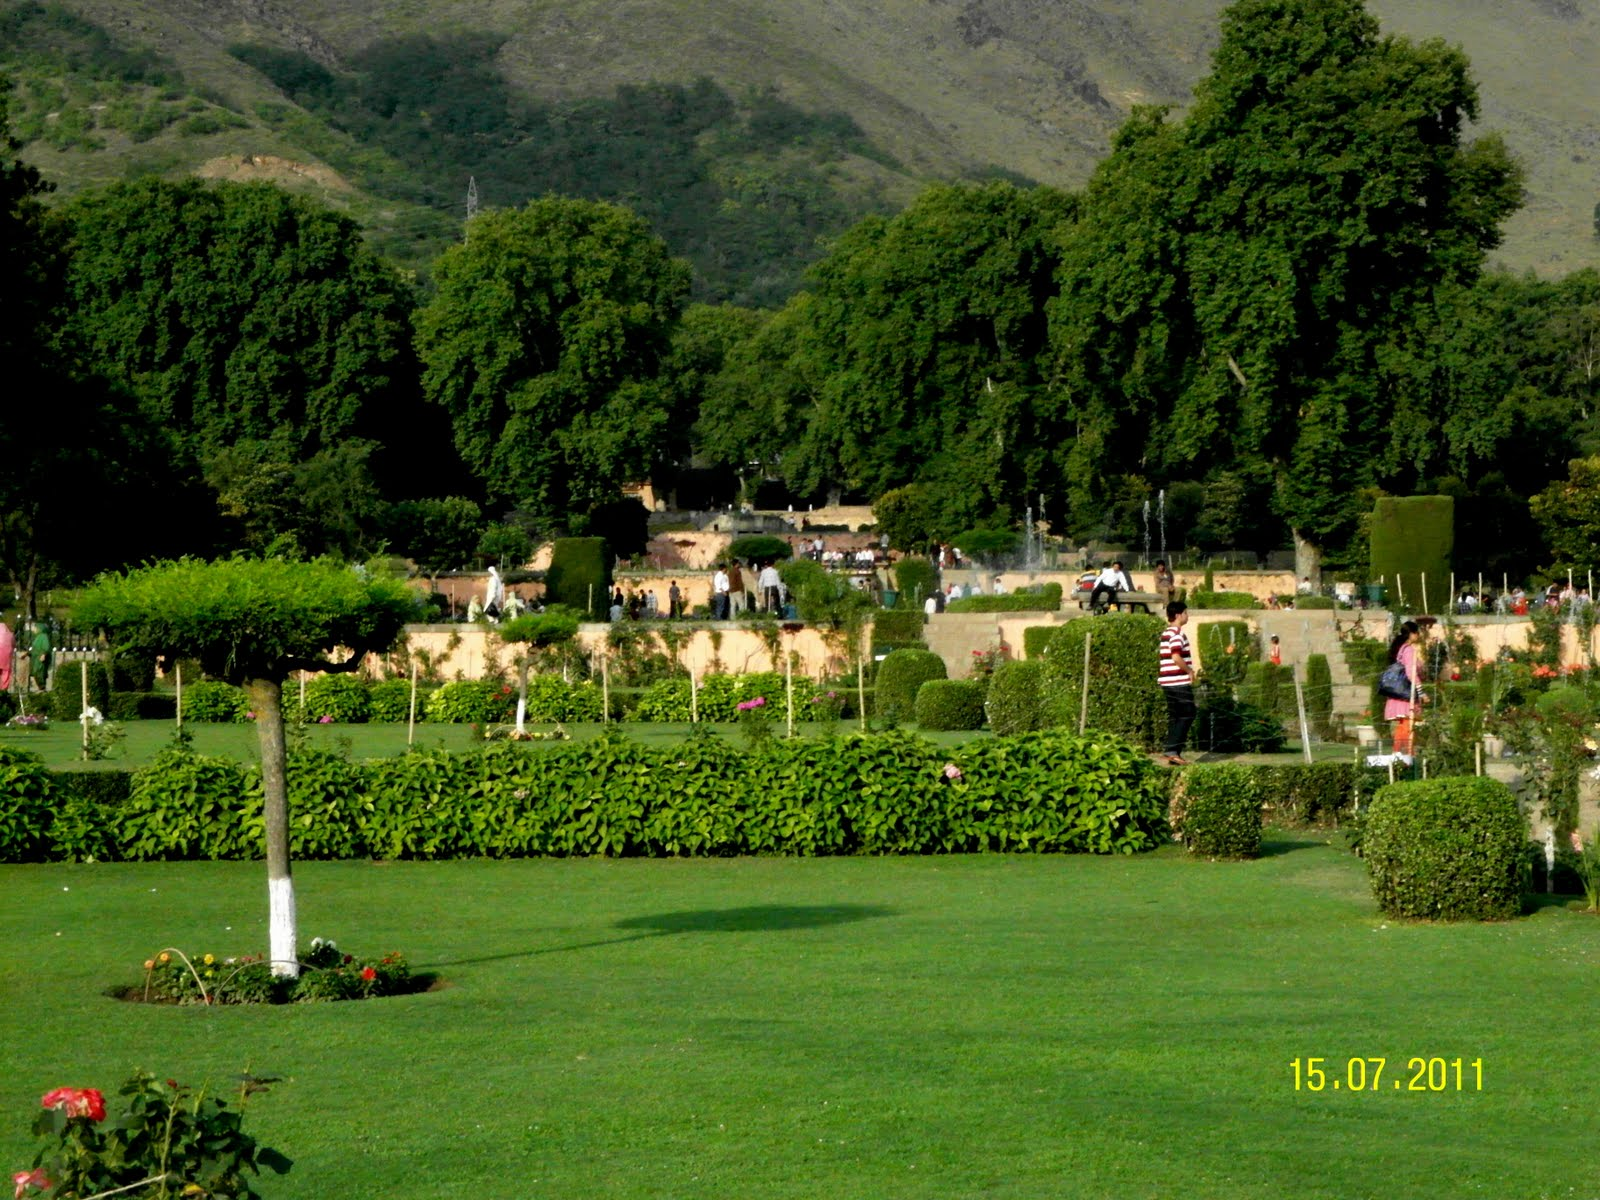 mughal gardens in kashmir Kashmir - an introduction  srinagar has many well laid out mughal styled gardens such as chashme shahi or the royal spring,  the mughal gardens in kashmir.